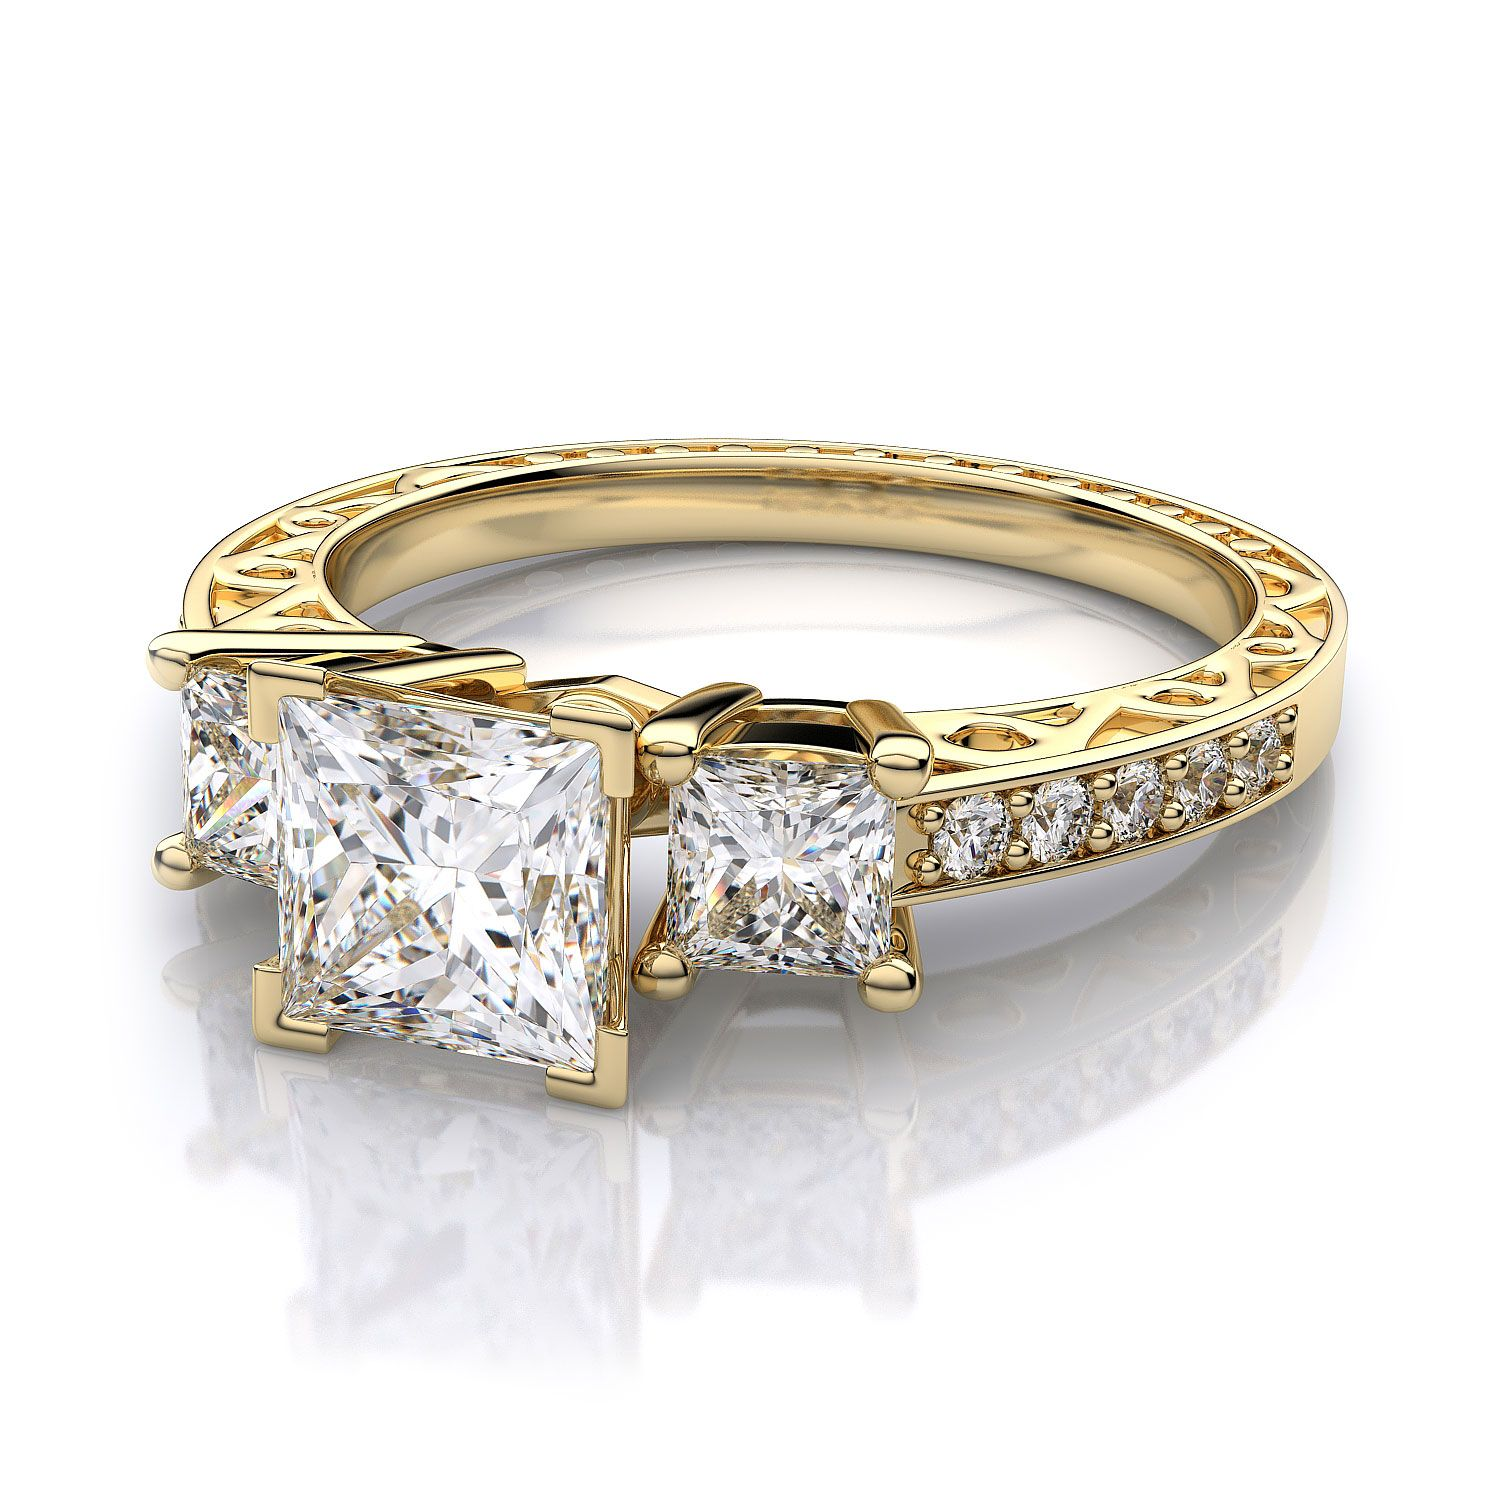 cut rings diamond n white ring collection princess pdp main engagement rsp jewellery online gold buydiamond